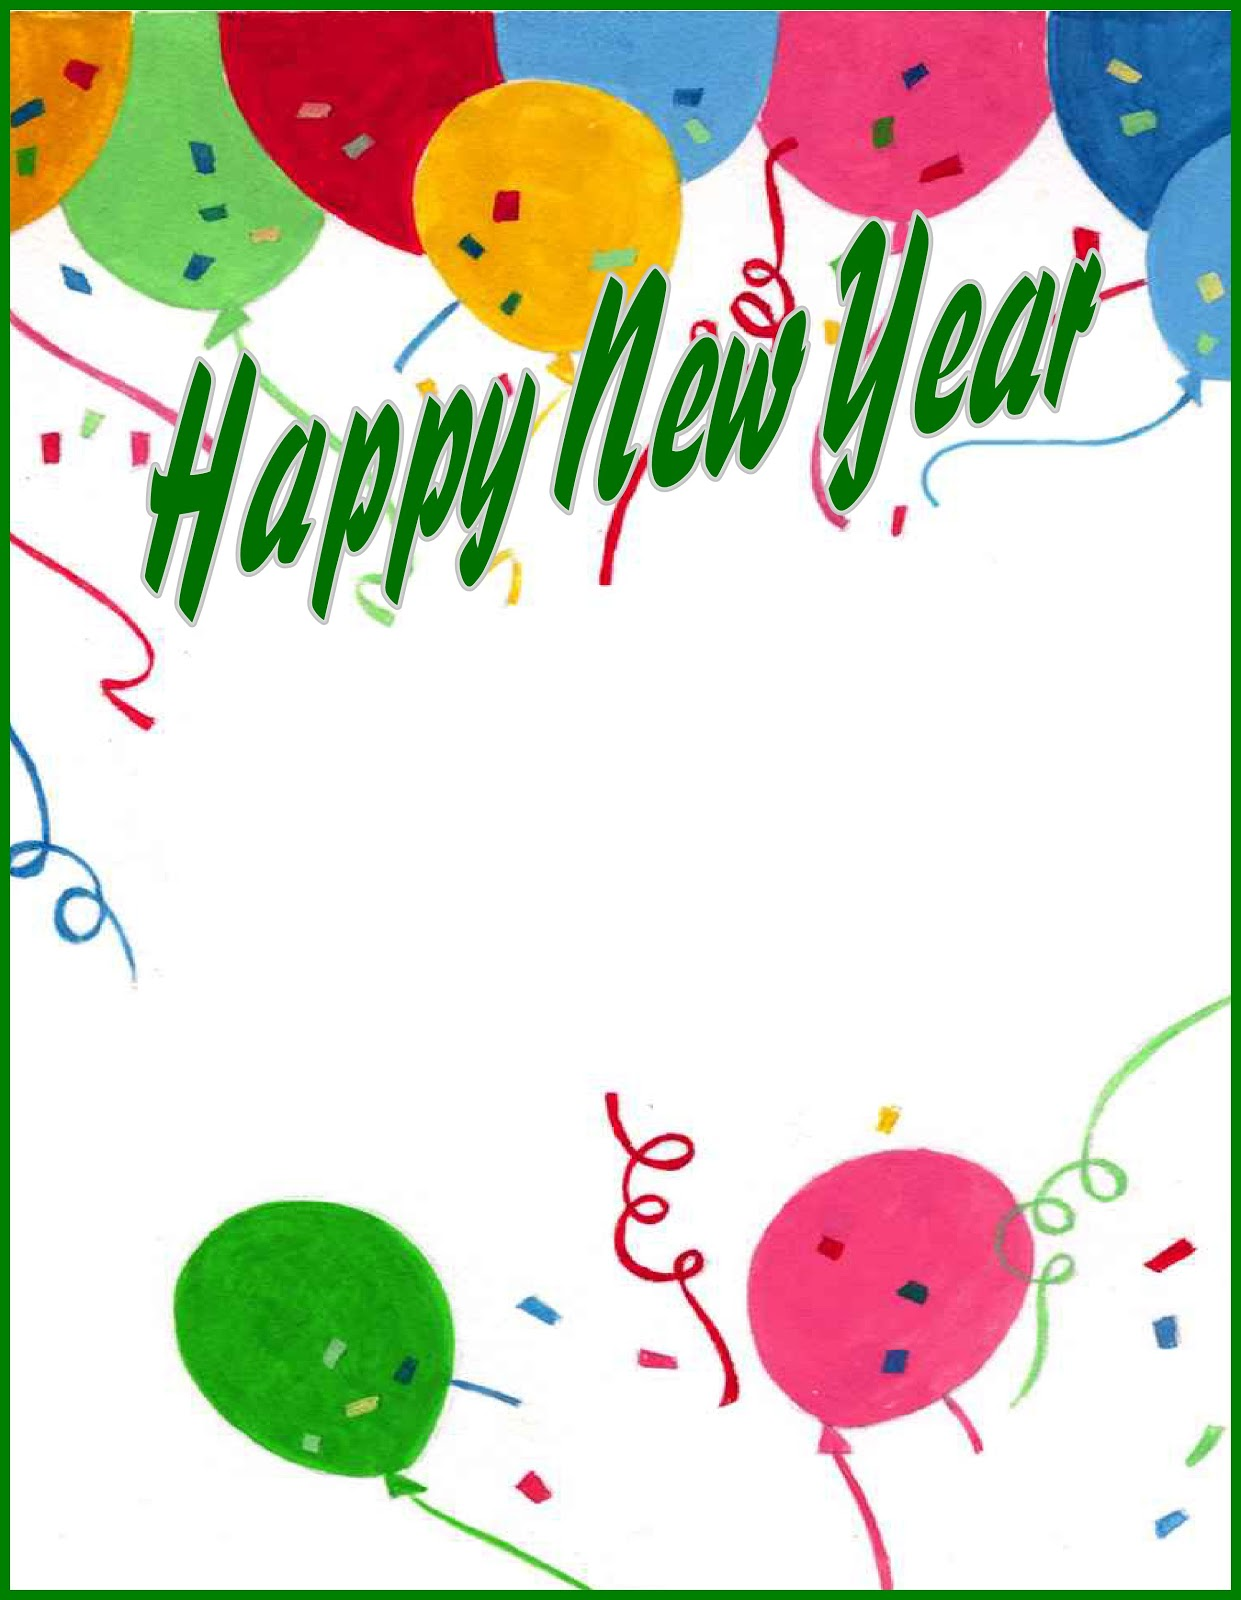 1241x1600 Christian Images In My Treasure Box New Years Borders, Backdrops